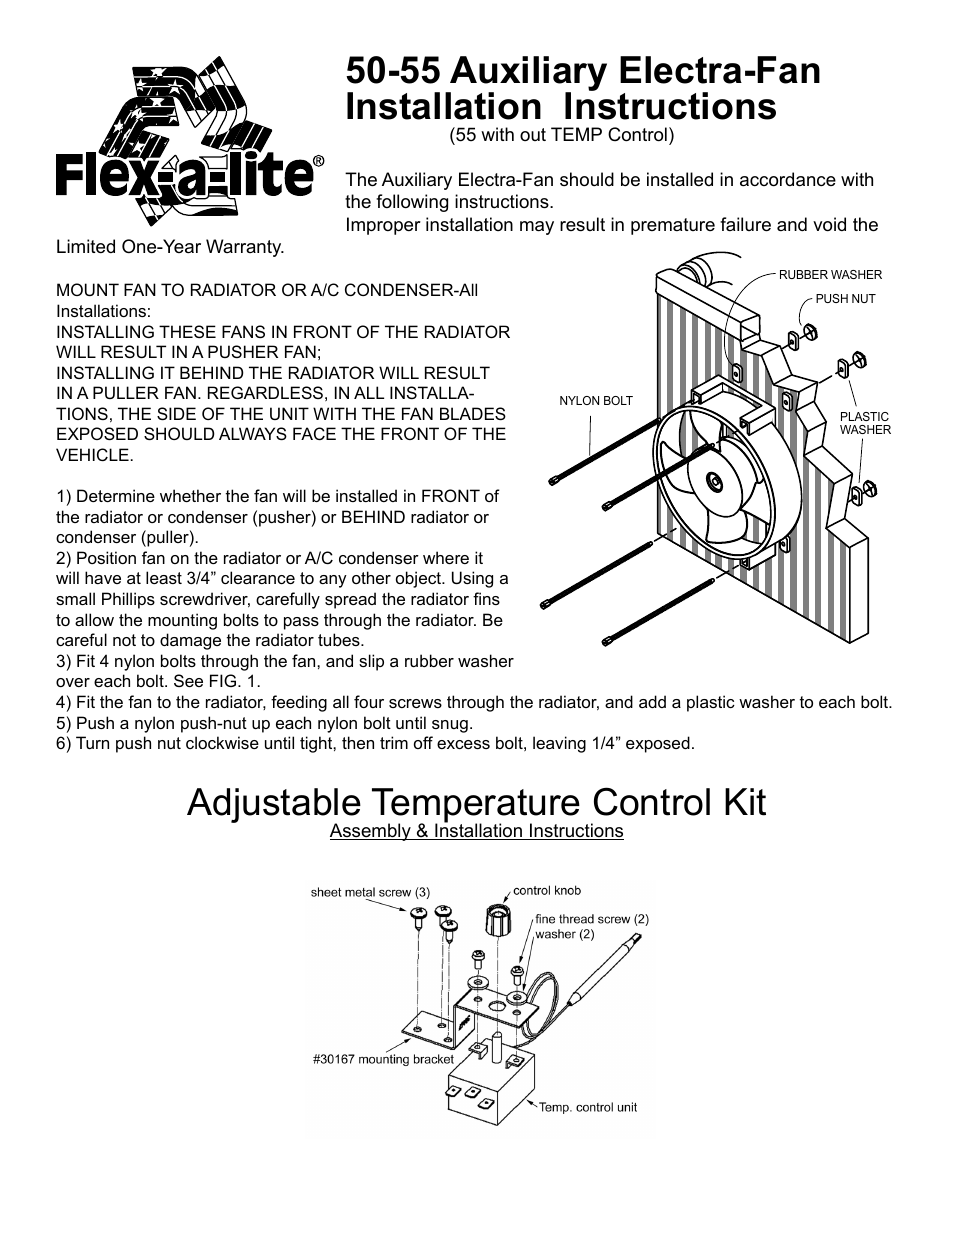 Adjustable Radiator Fan Wiring Diagram Control A Flex Wire Flexalite Lite 55 Auxiliary Electra User Manual 2 Pages Also Rh Manualsdir Com